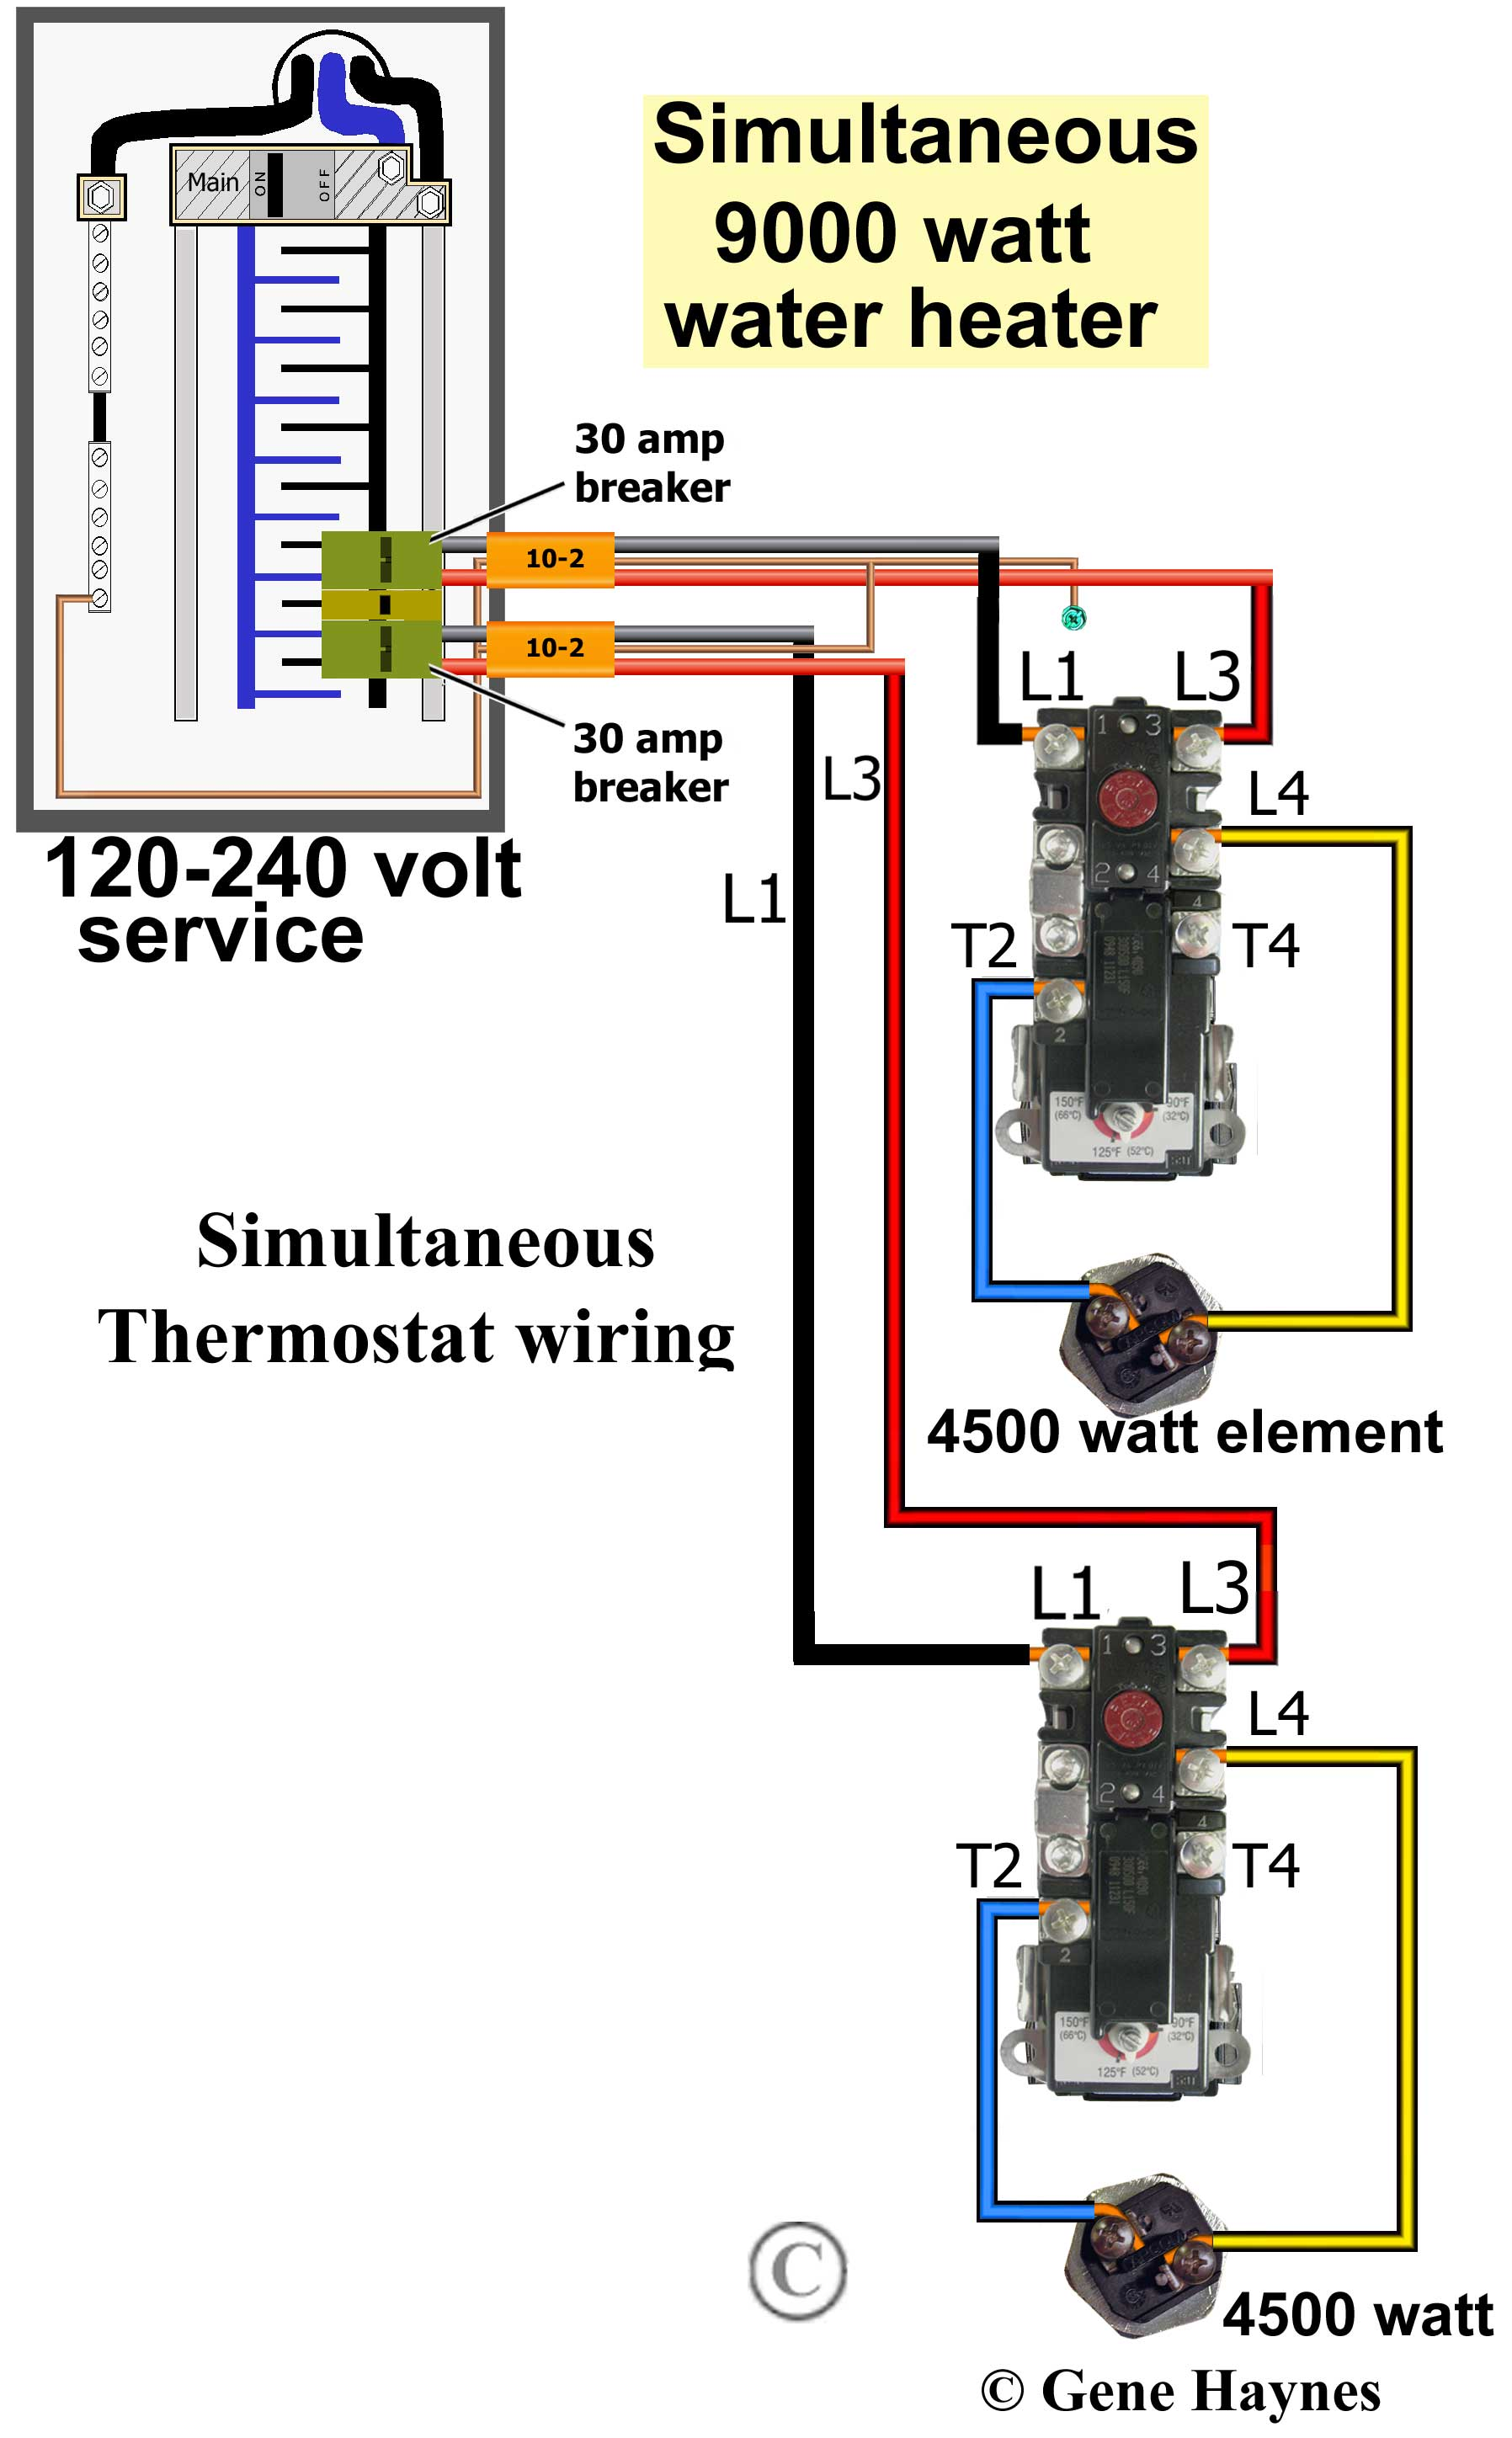 Ss 8833 Water Heater Wiring Simultaneous Operation Wiring Diagram